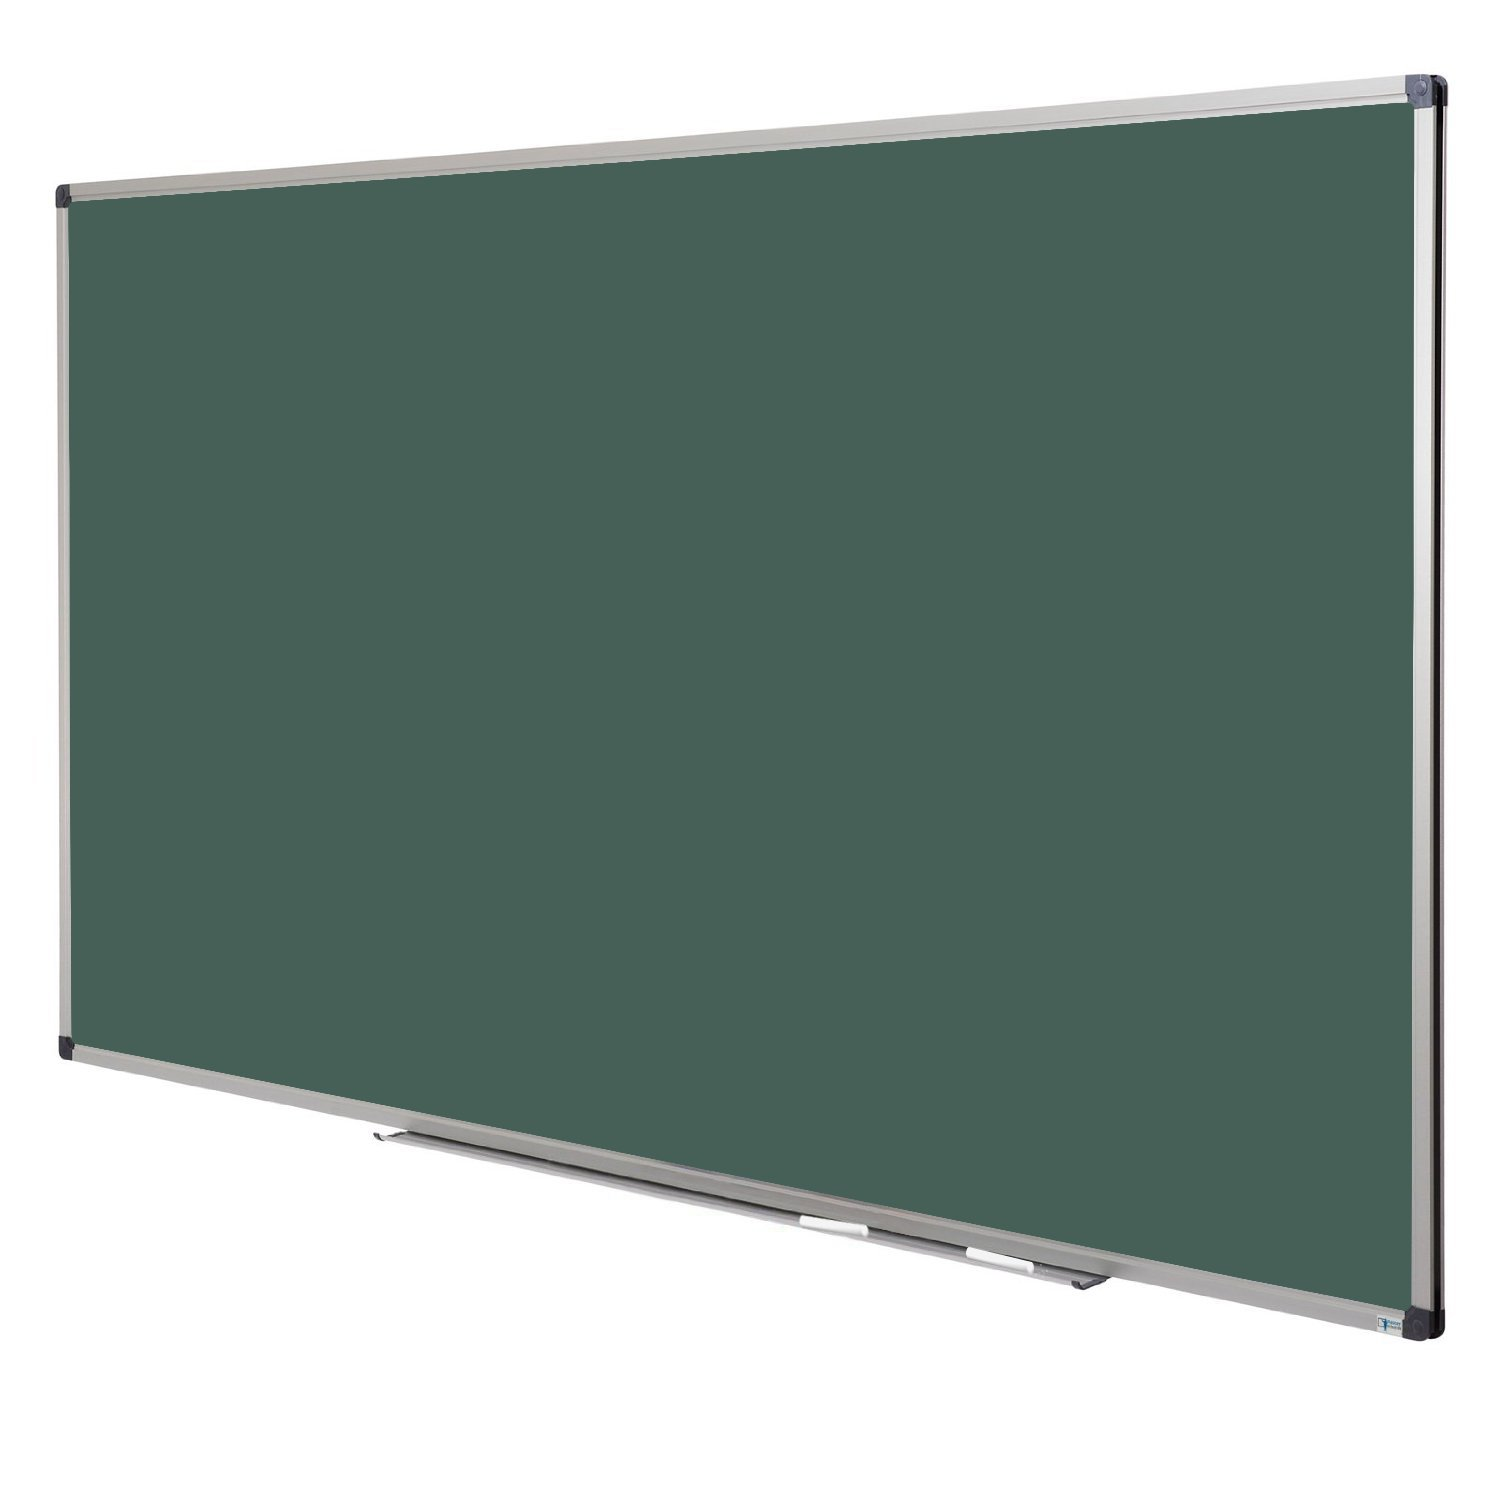 Master of Boards Porcelain Magnetic Whiteboard | 60x90cm | 2 Sizes, 25 Year Guarantee | Scratch Proof Enamel